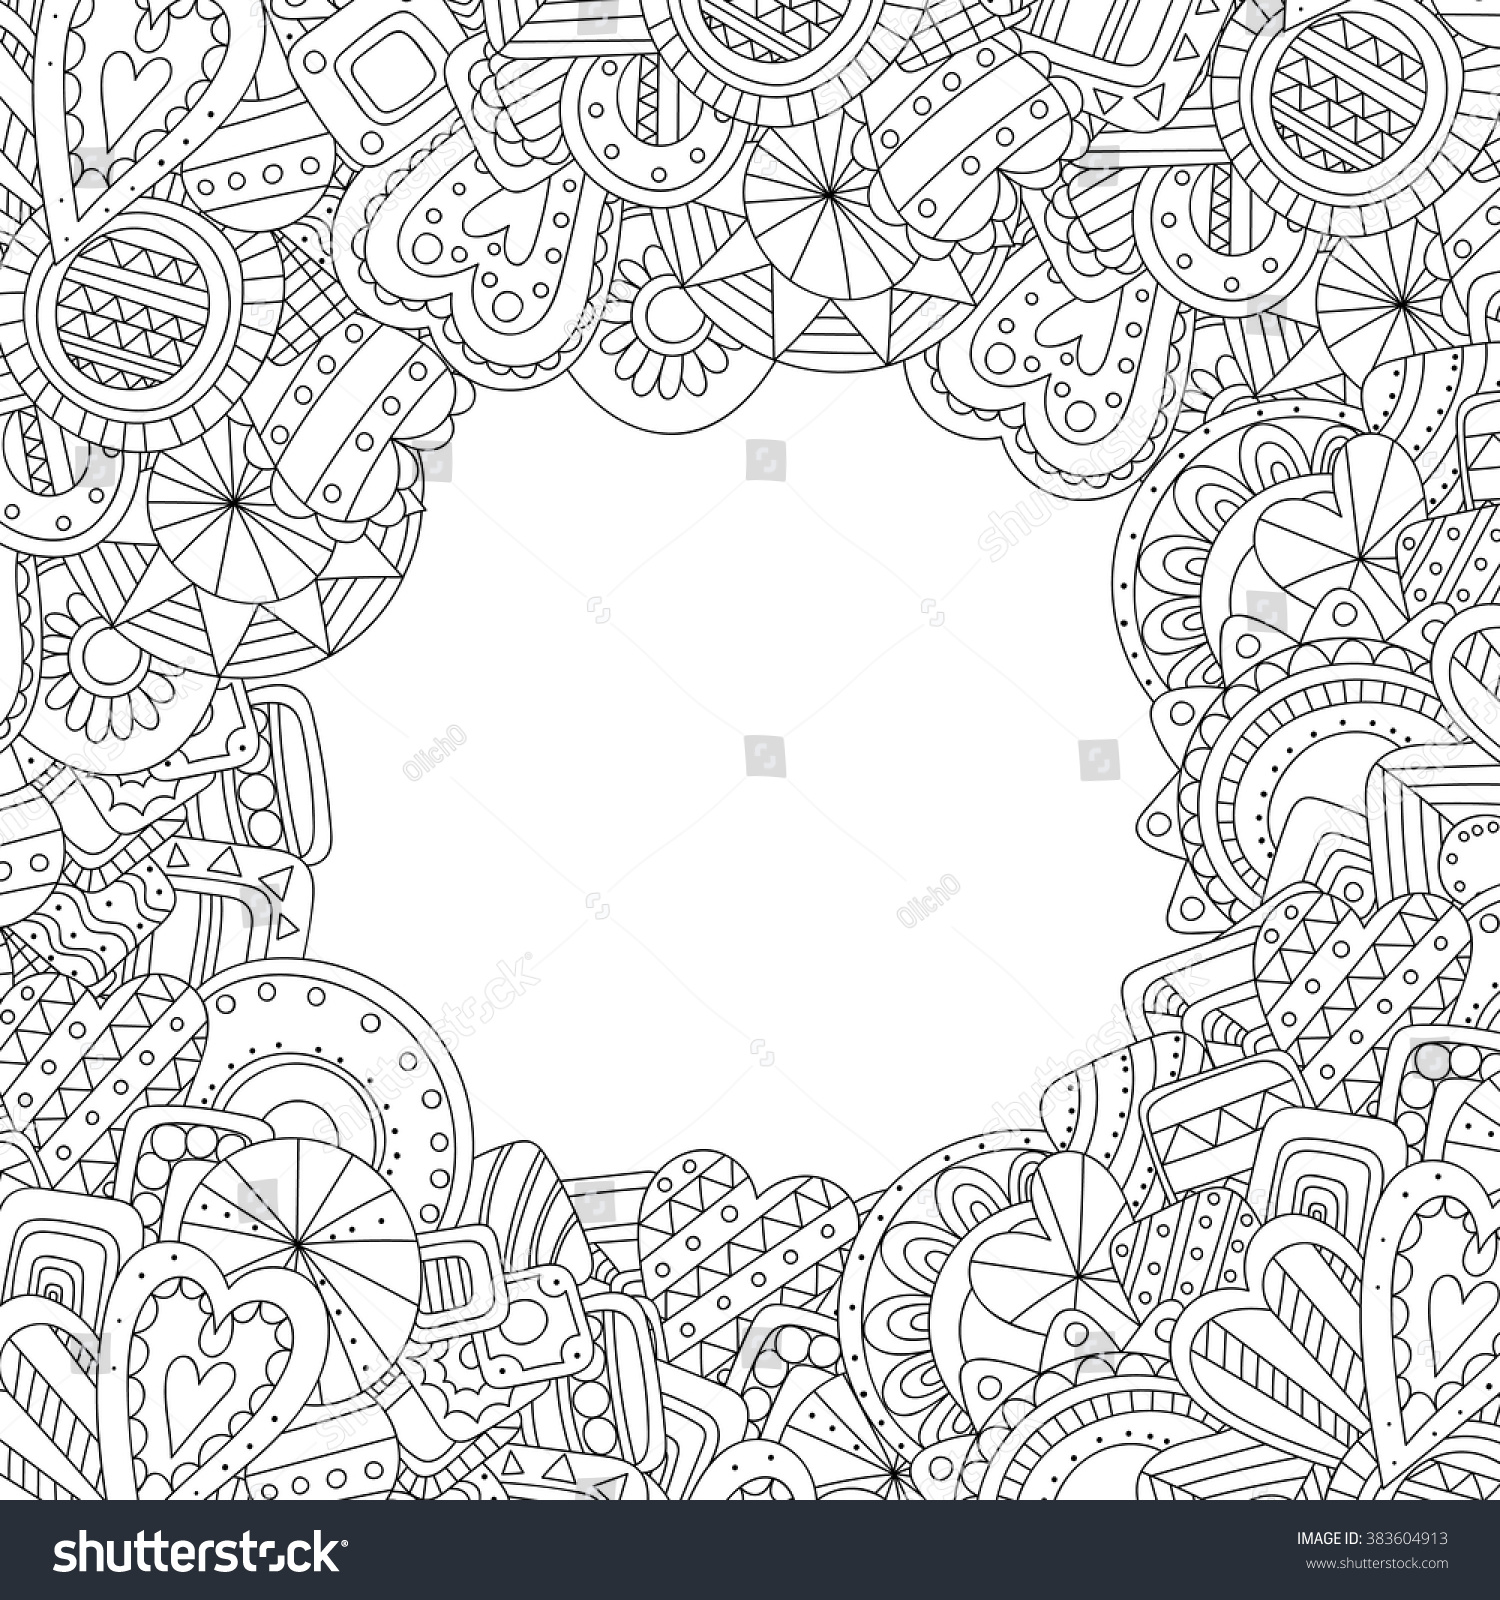 abstract hand drawn zentangle style square stock vector